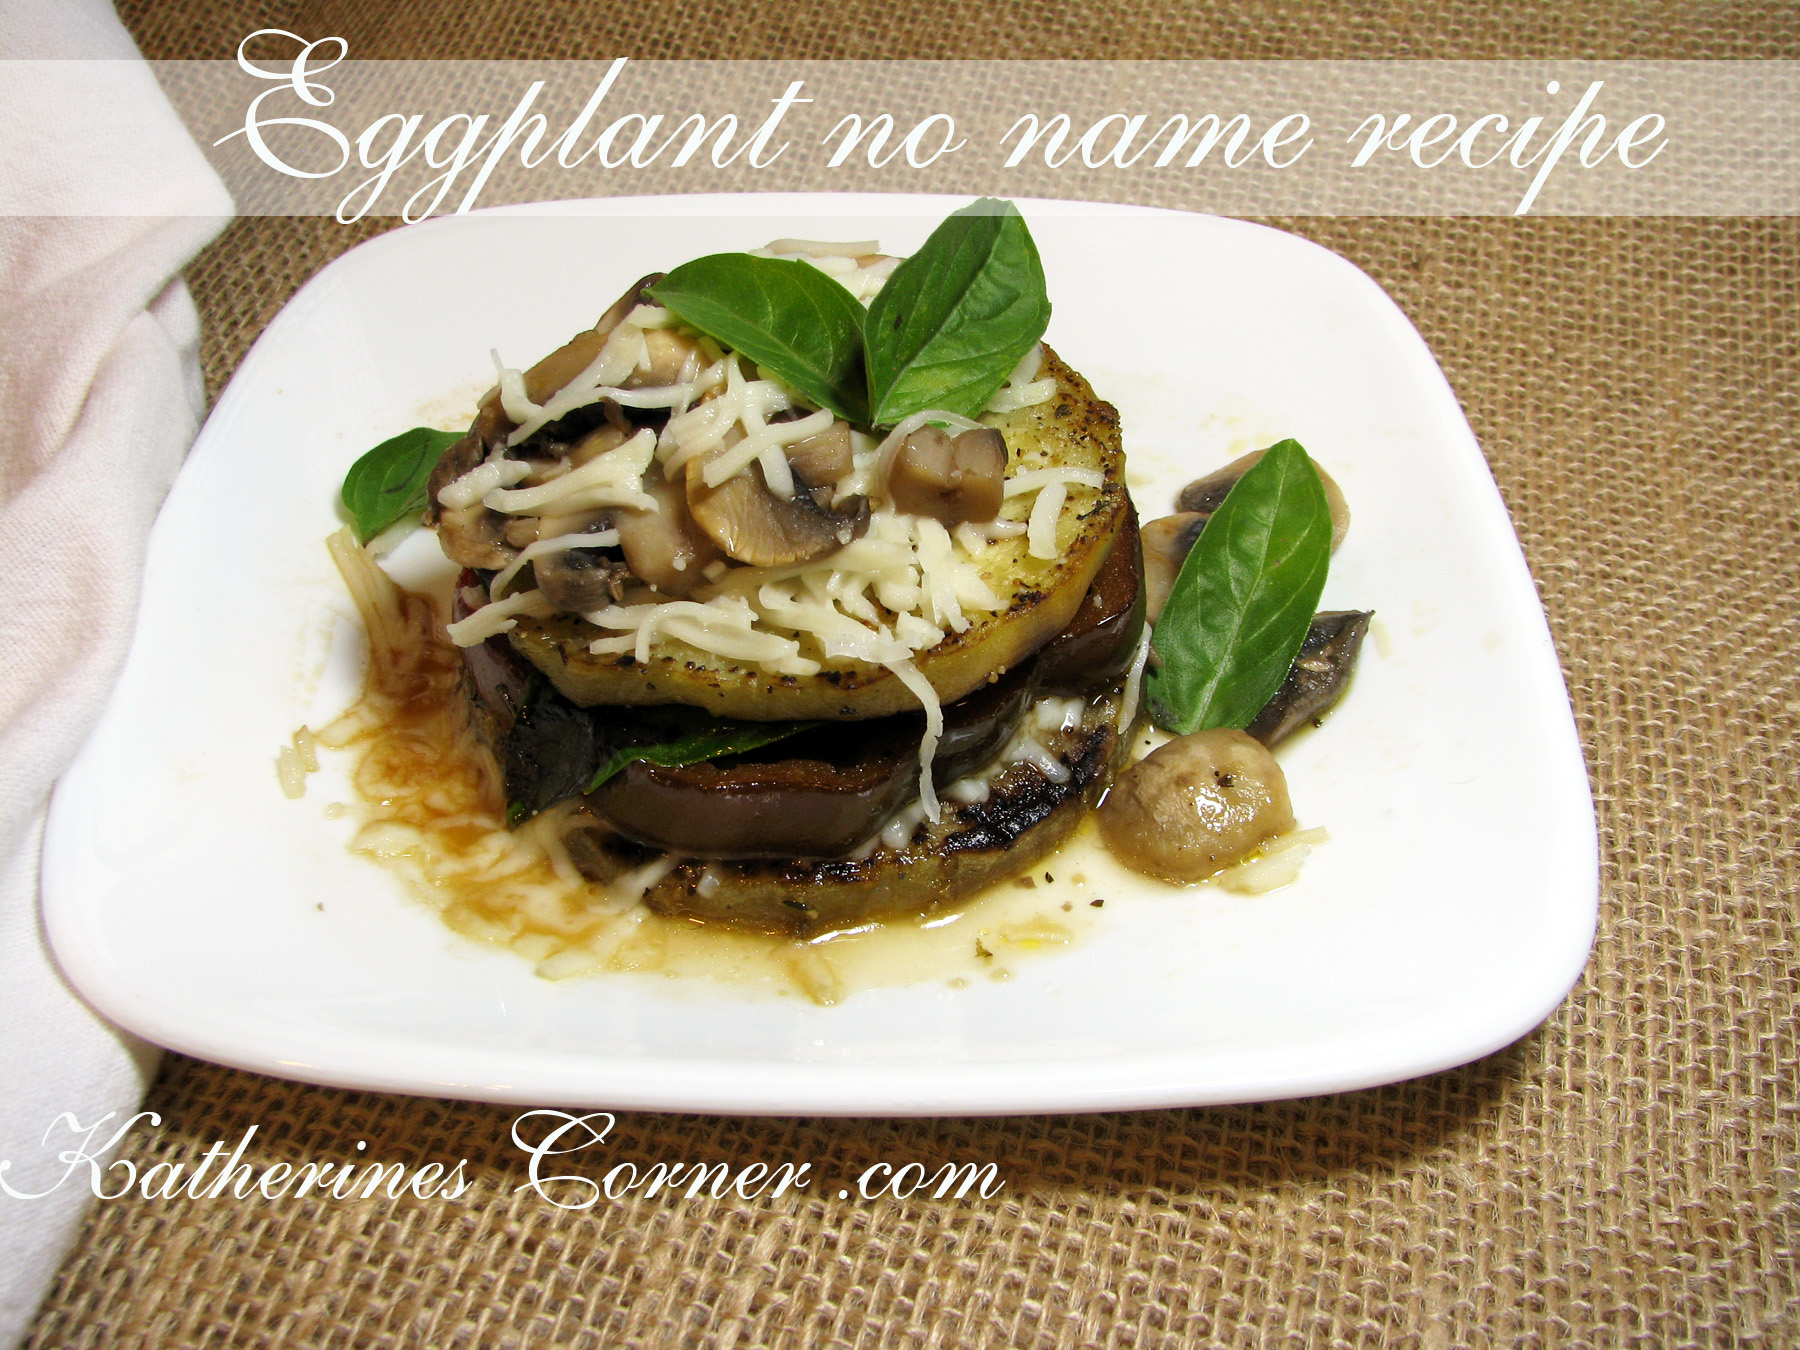 Eggplant No Name Recipe